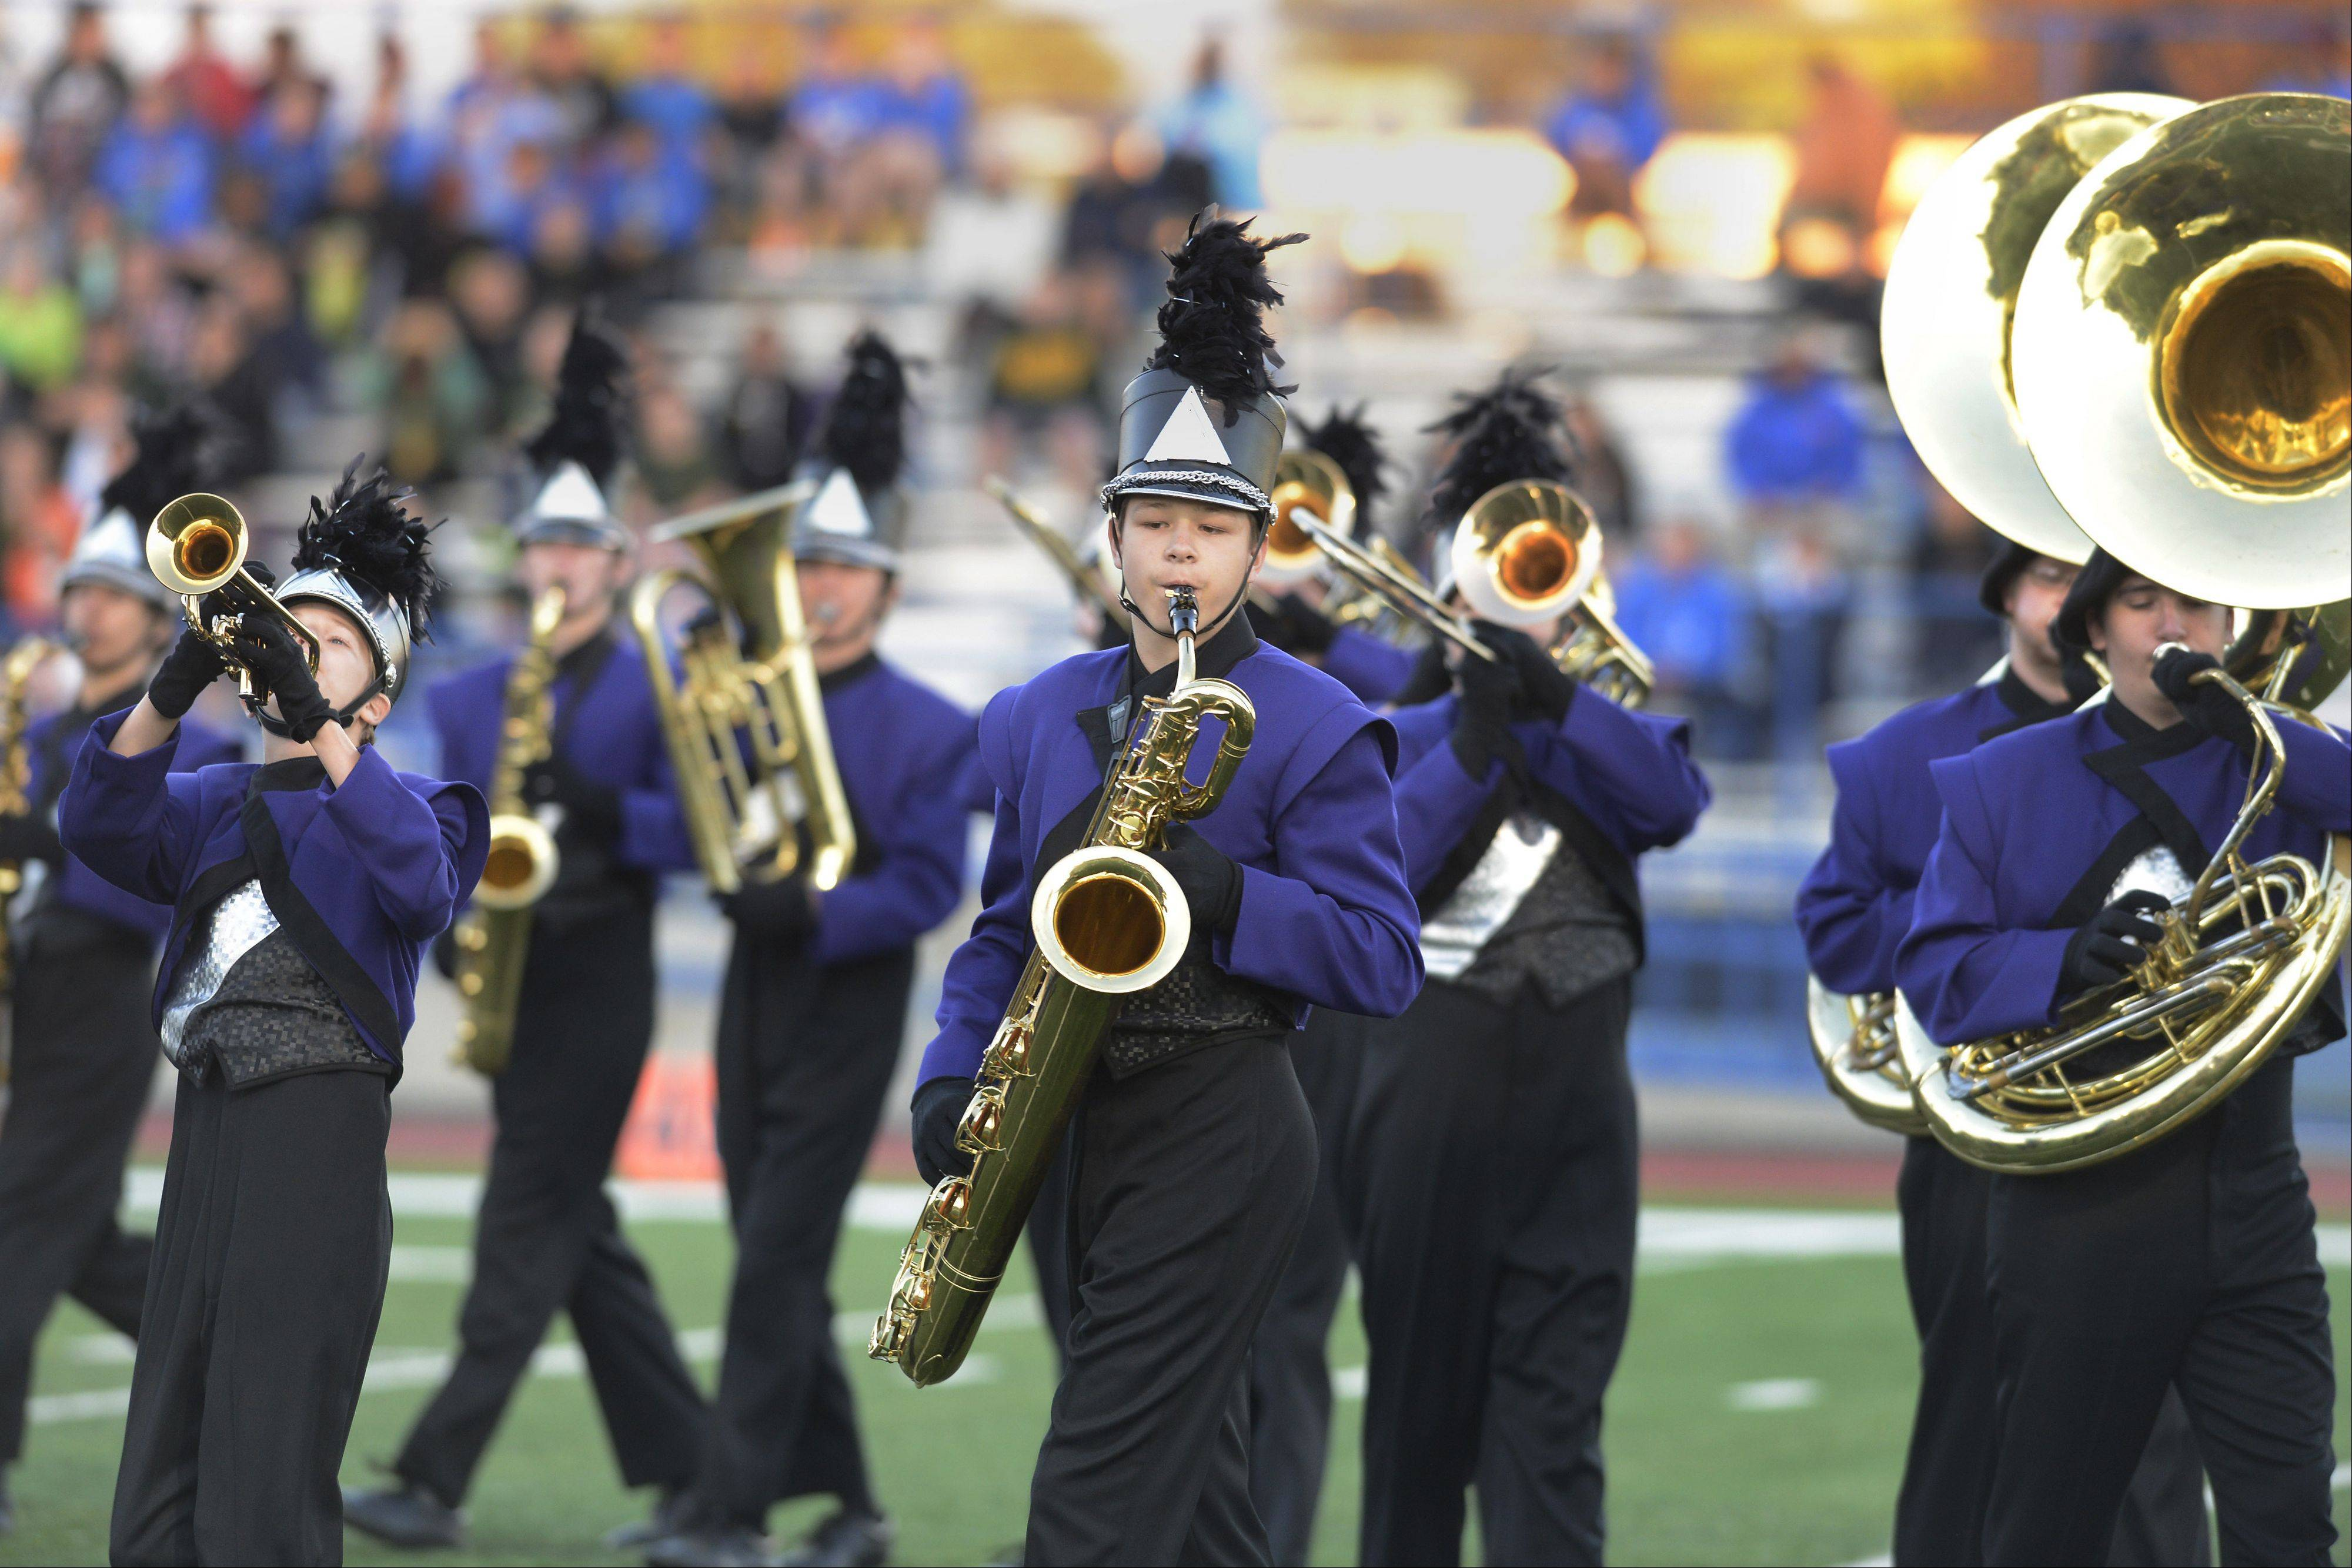 The Rolling Meadows Marching Mustangs perform during the annual Chicagoland Marching Band Festival at Wheeling High School Saturday.